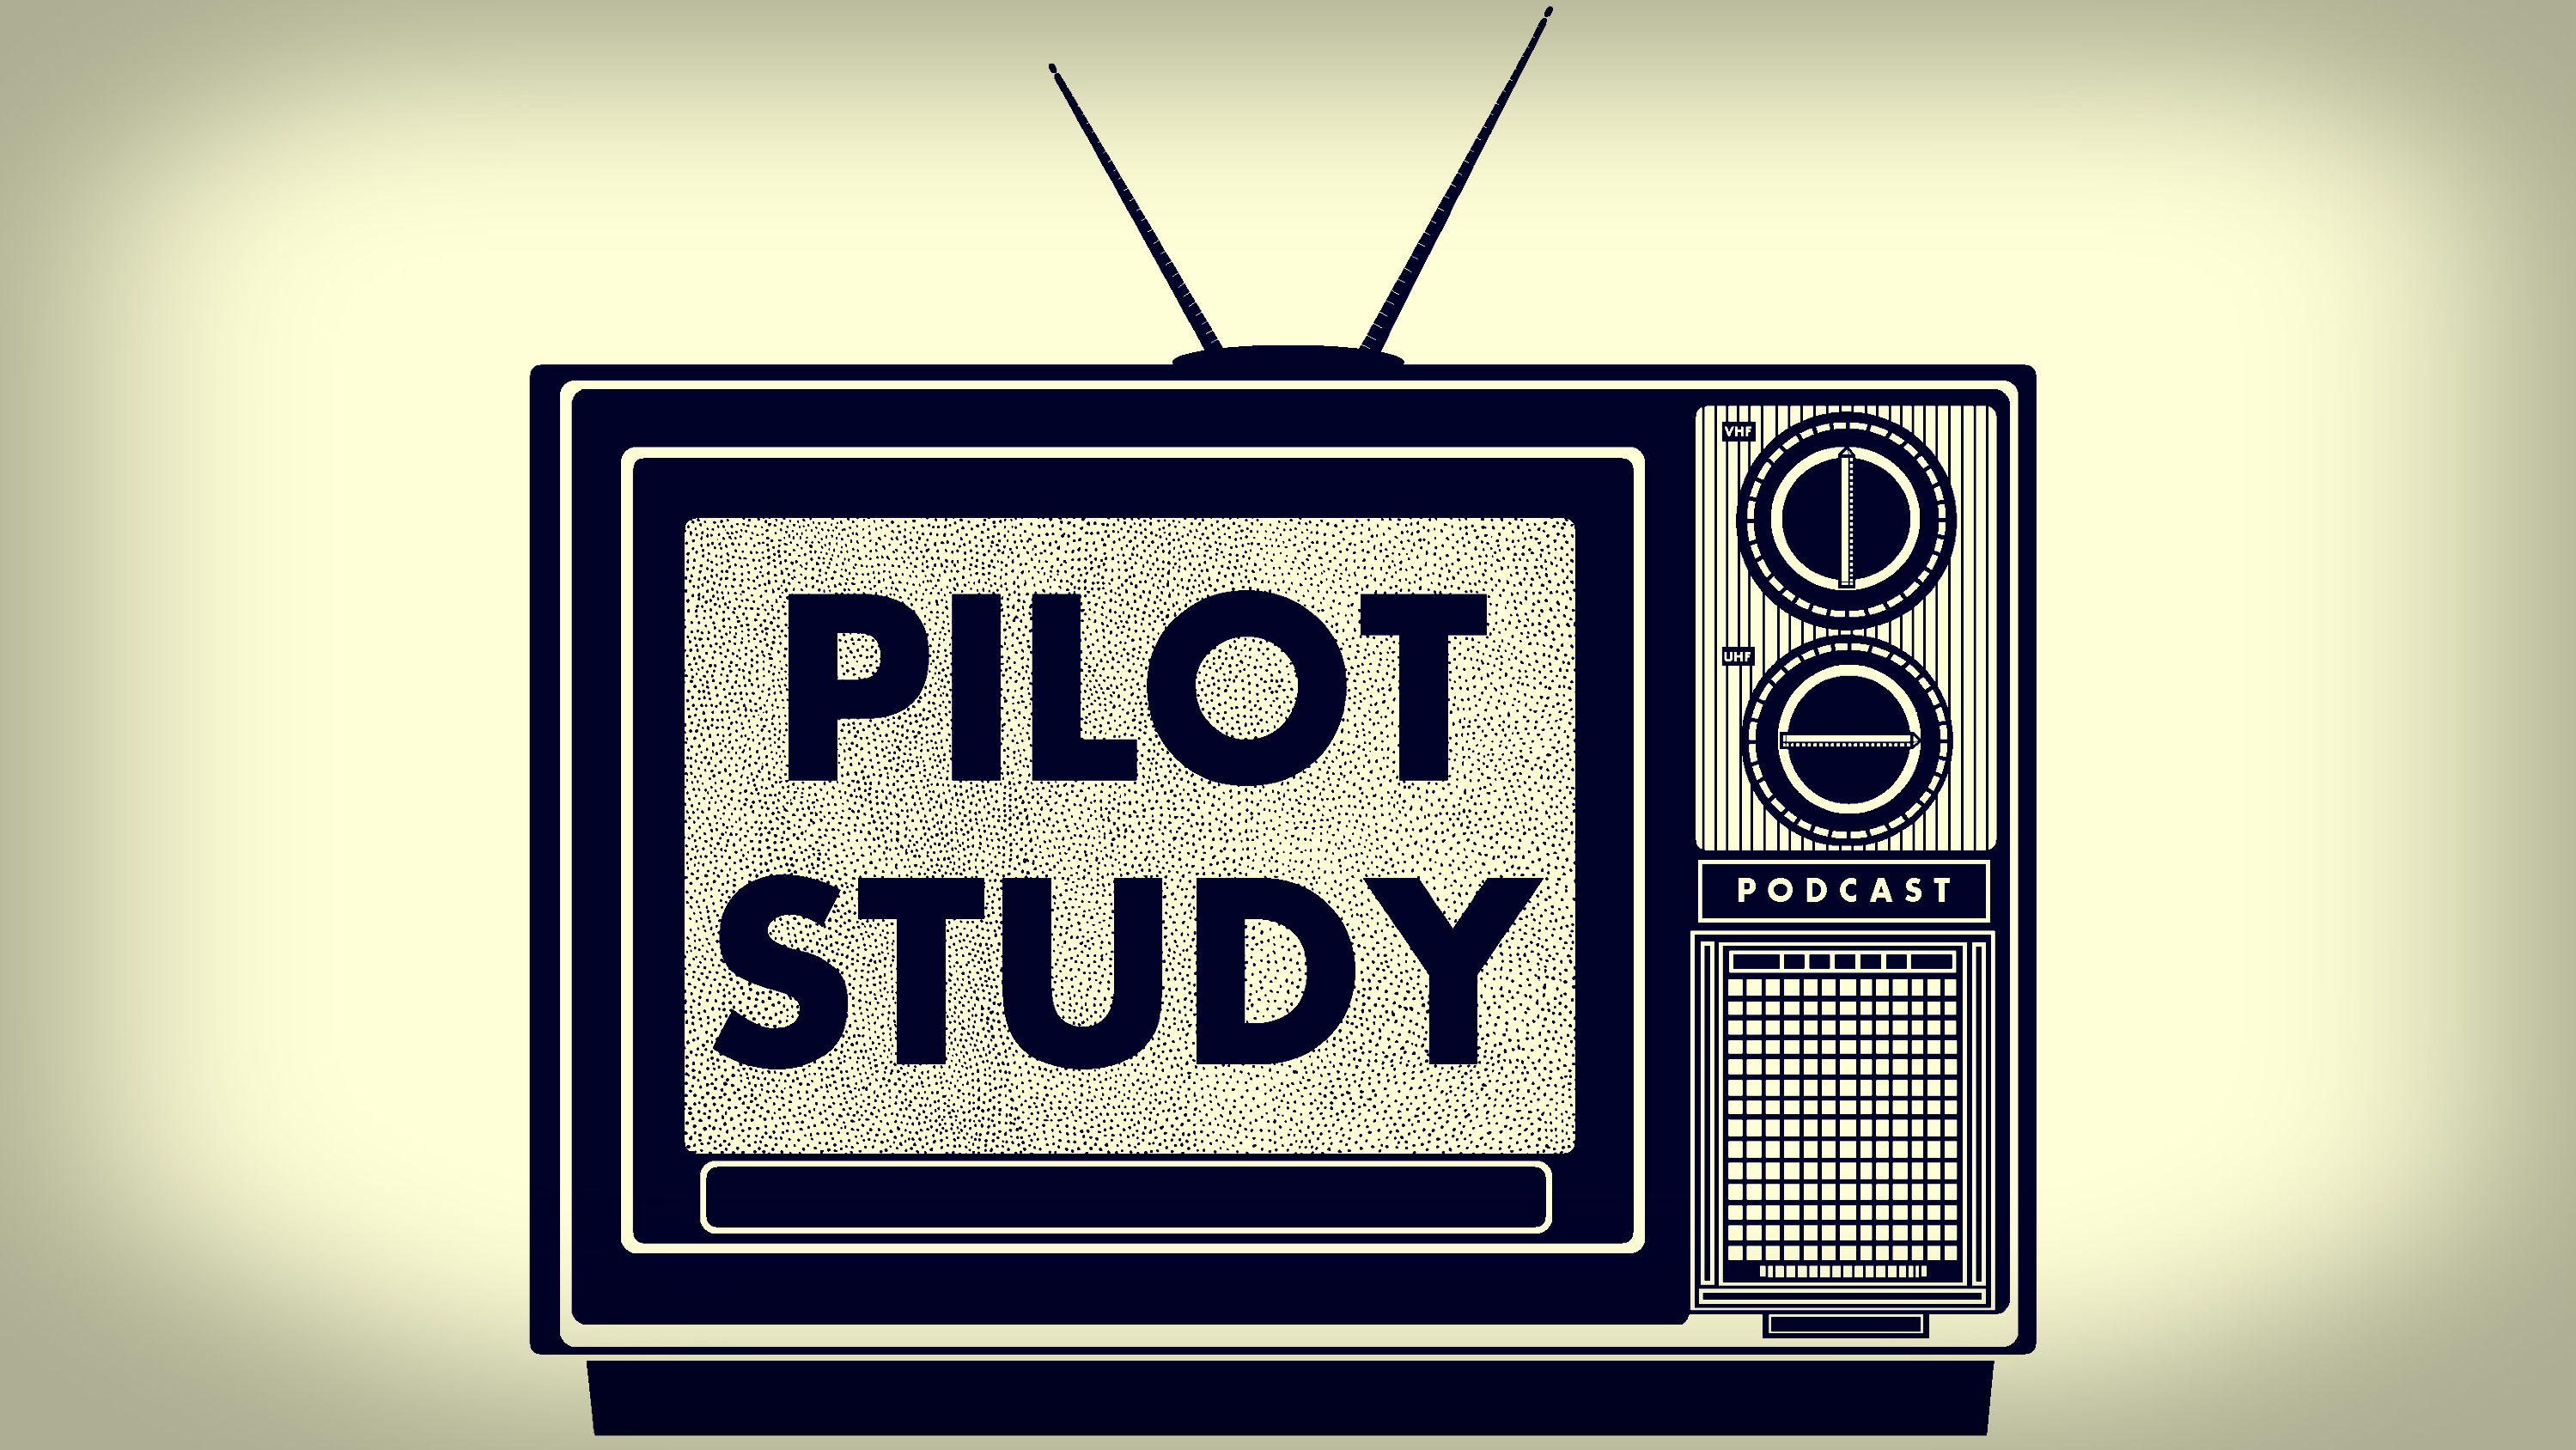 pilot study Table of contents page introduction 3 why do a pilot study 3 aim of the pilot study 4 steps for piloting 4 methods and statistics required 8.